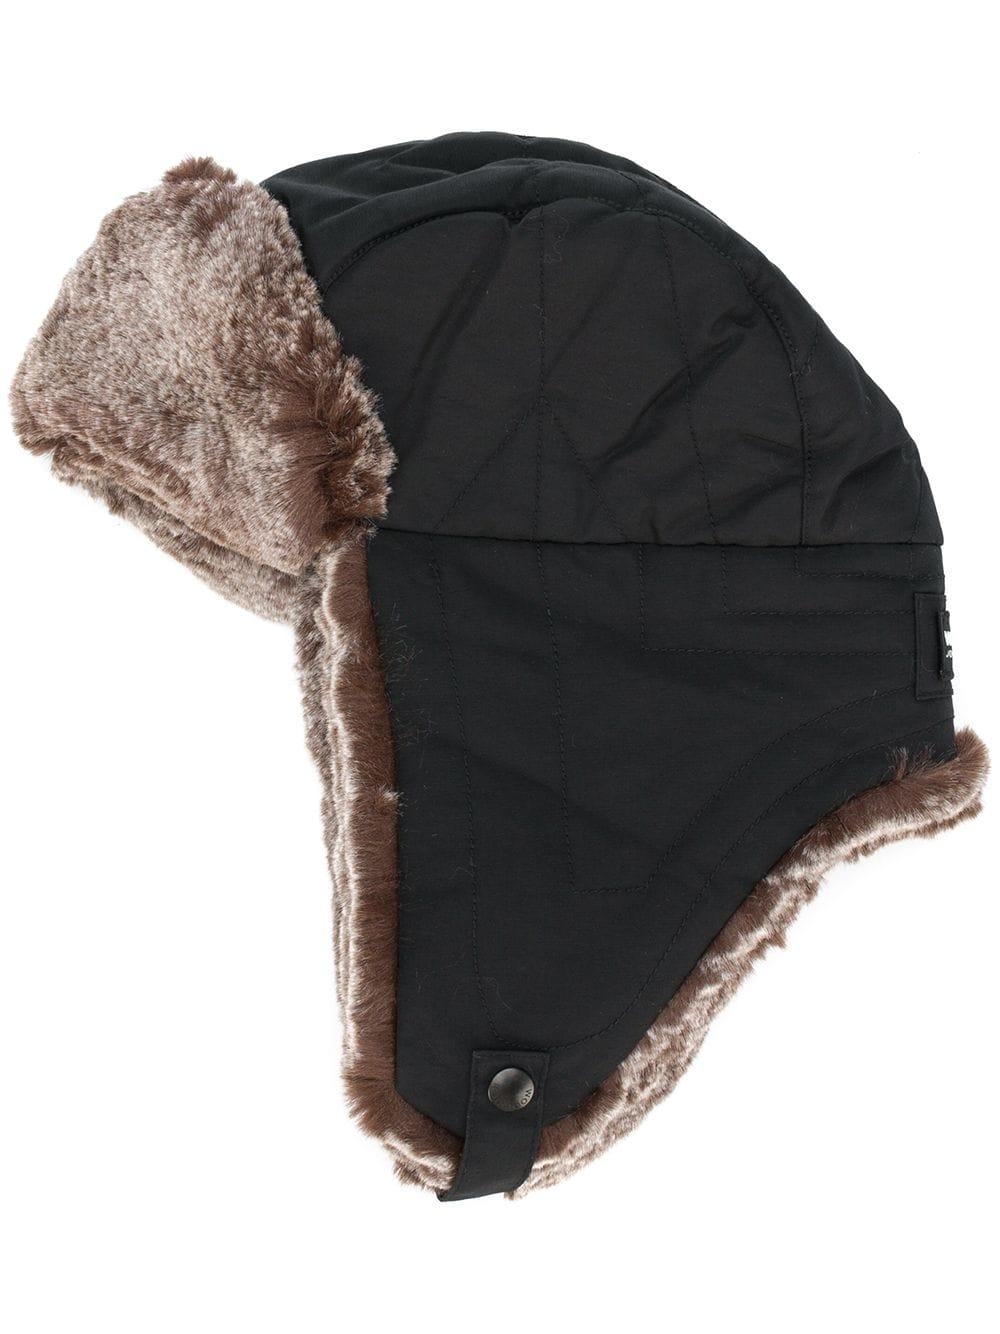 0ab266cc Woolrich - Black Faux-fur Contrast Hat for Men - Lyst. View fullscreen